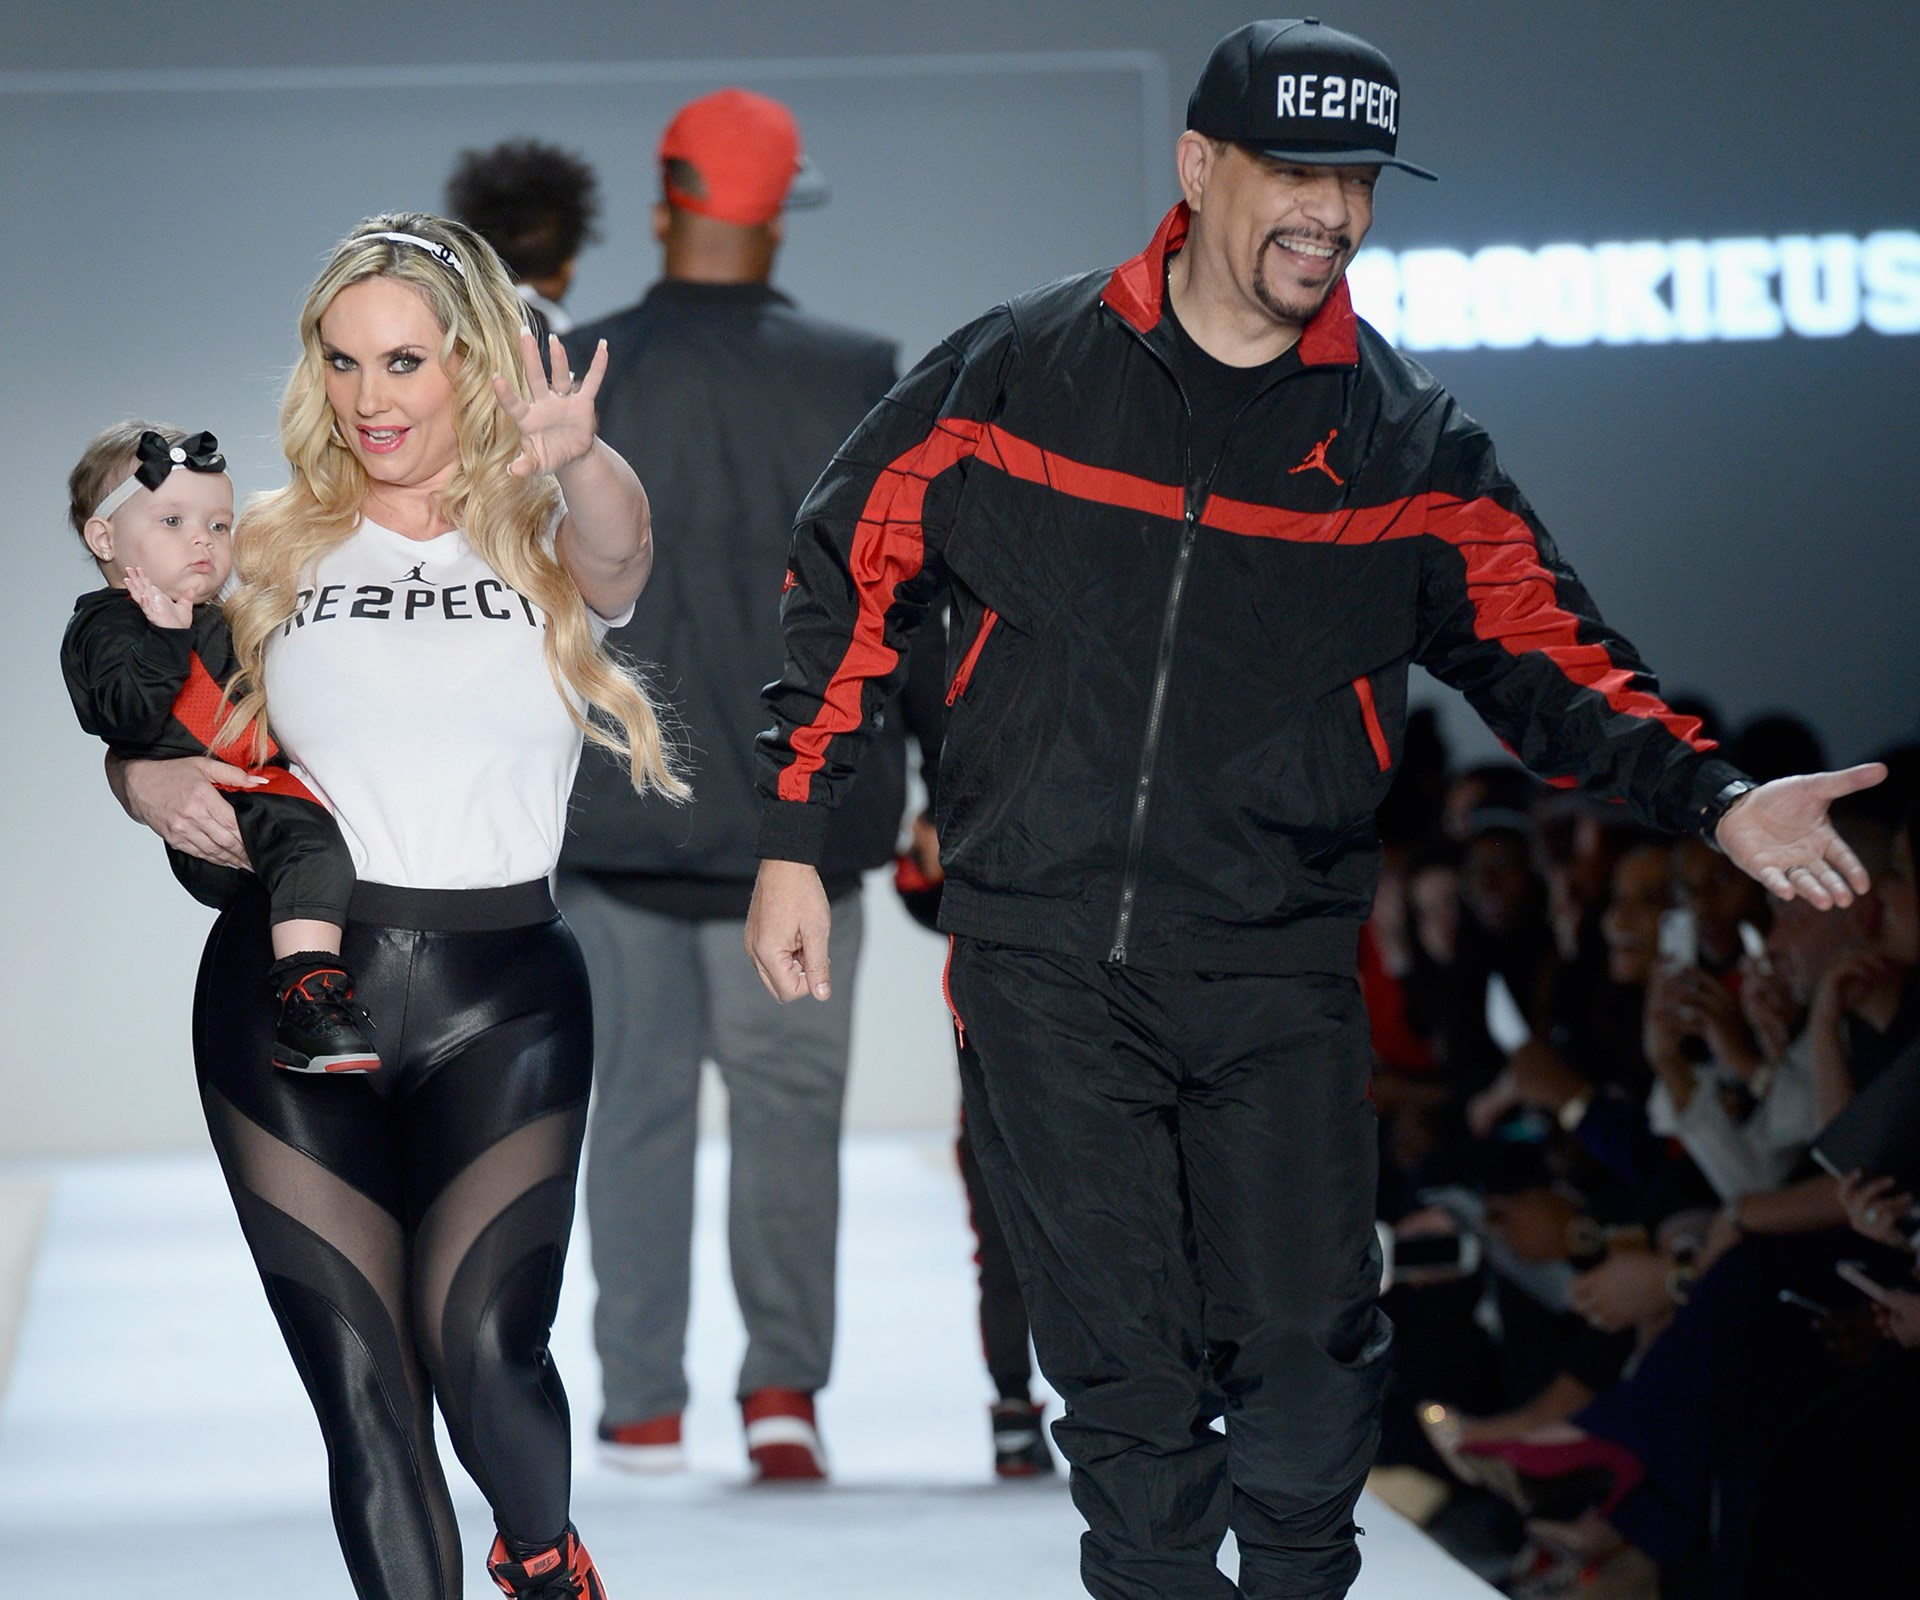 Baby's first catwalk! Coco Austin and Ice-T's daughter Chanel has made her New York Fashion Week debut, strutting her stuff down the runway dressed head-to-toe in Nike/Air Jordan.